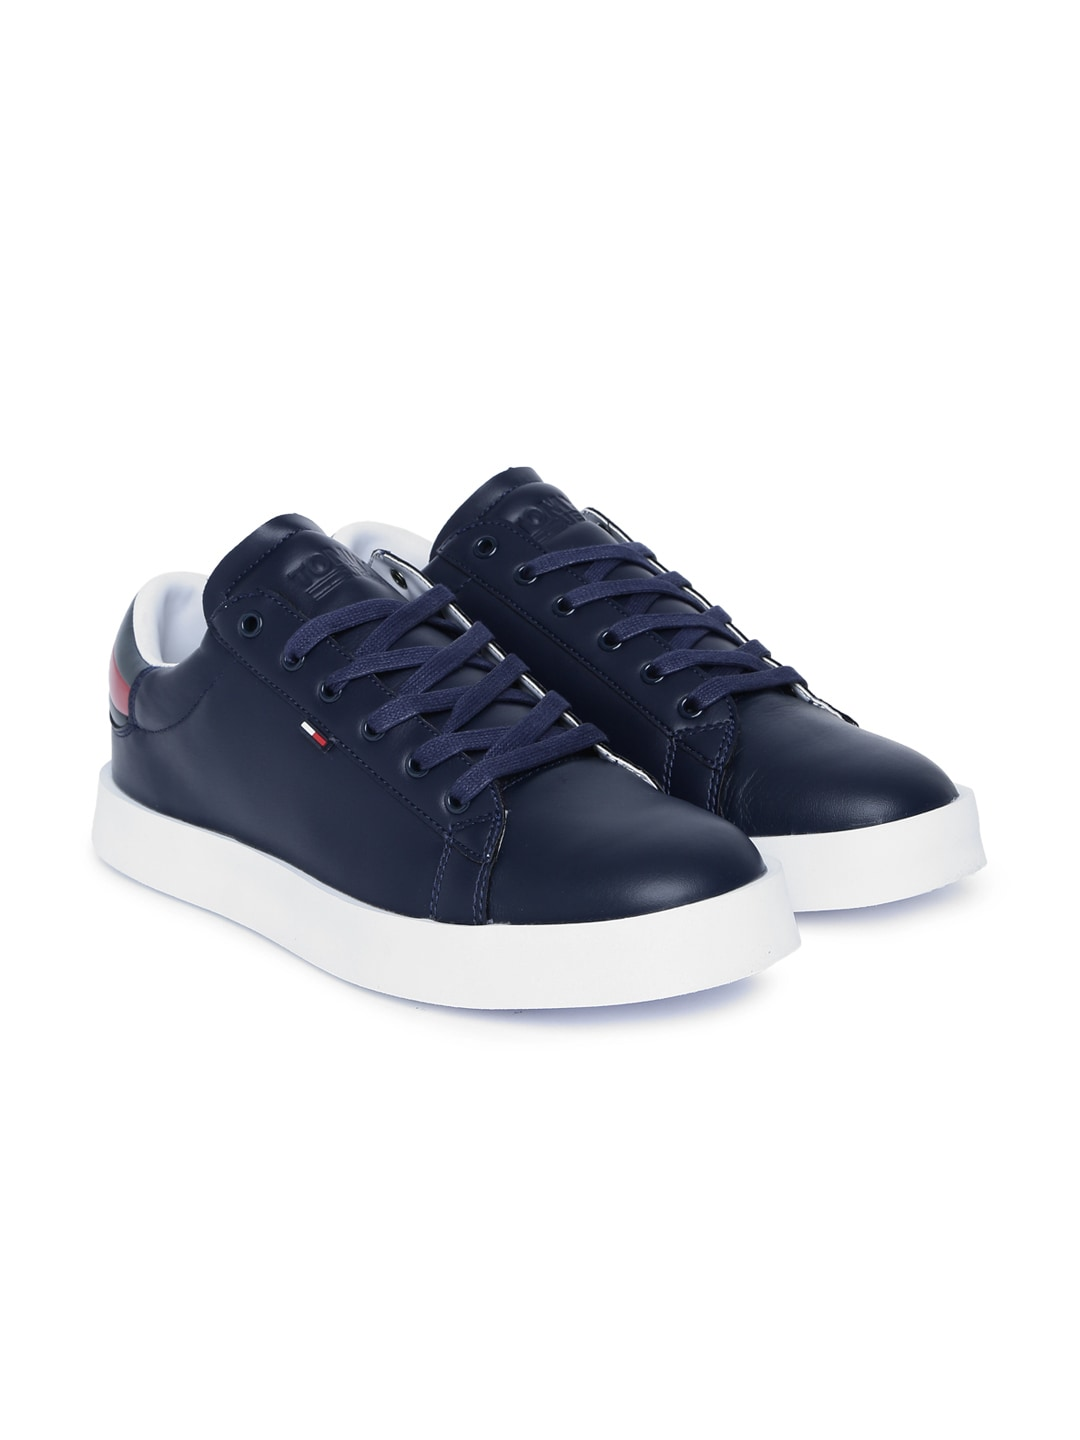 576ba59da Tommy Hilfiger Shoes - Buy Tommy Hilfiger Shoes Online - Myntra